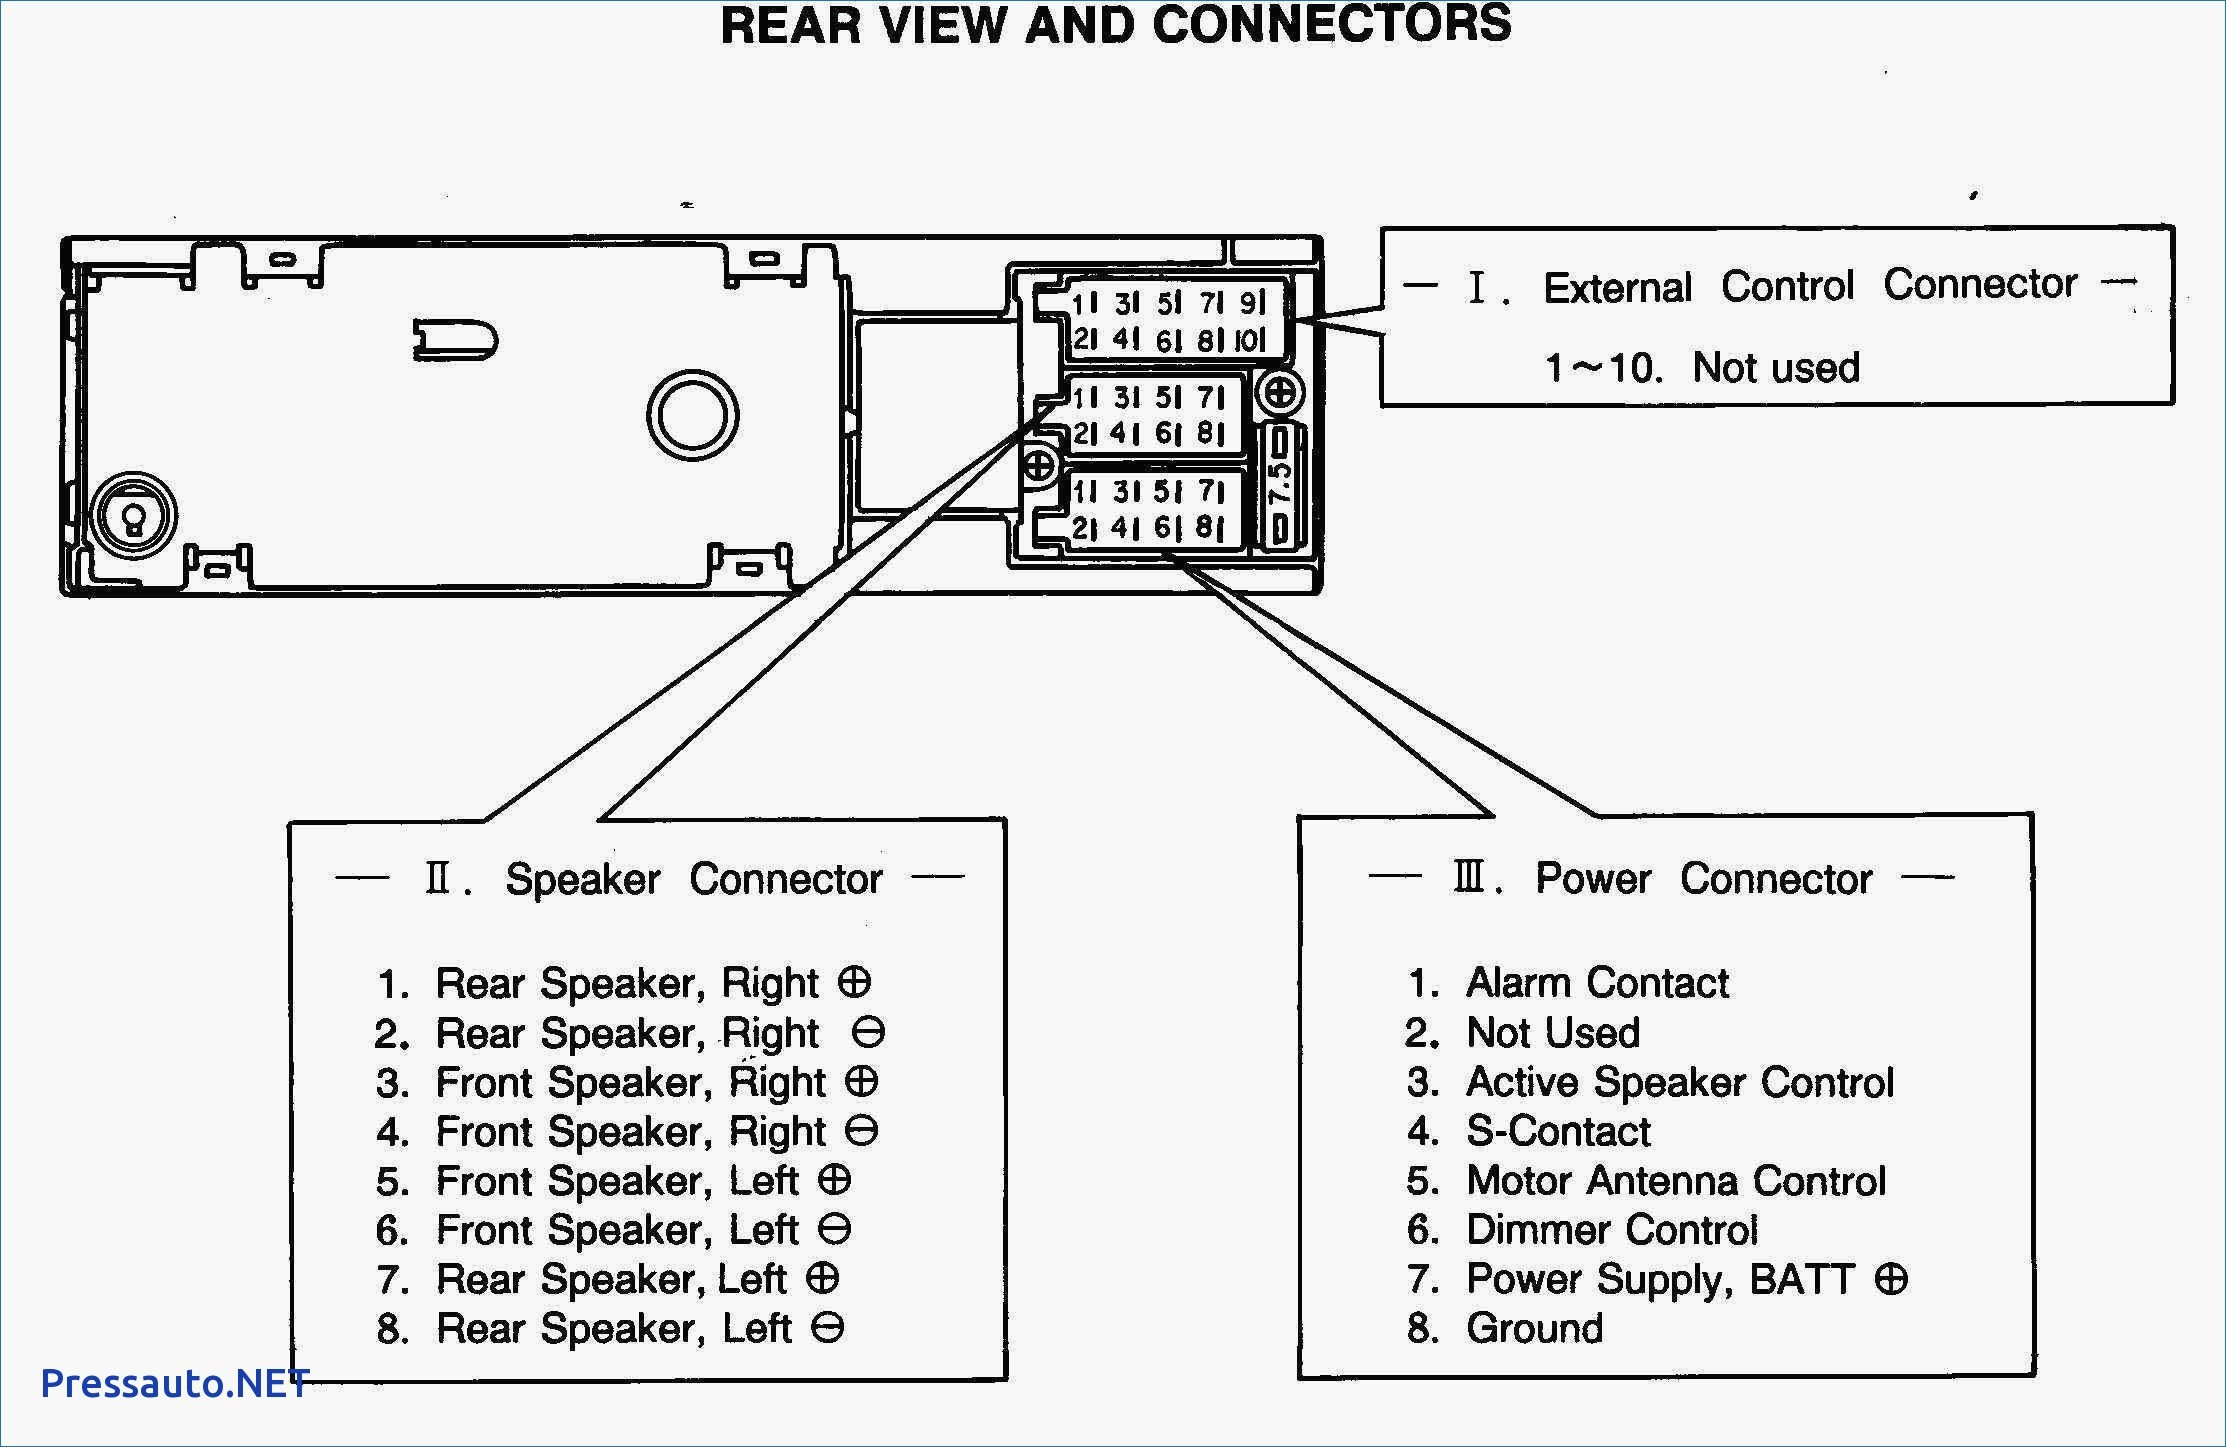 Car Radio Circuit Diagram Fresh Speaker Wiring Diagram Series Vs Parallel Diagram Of Car Radio Circuit Diagram